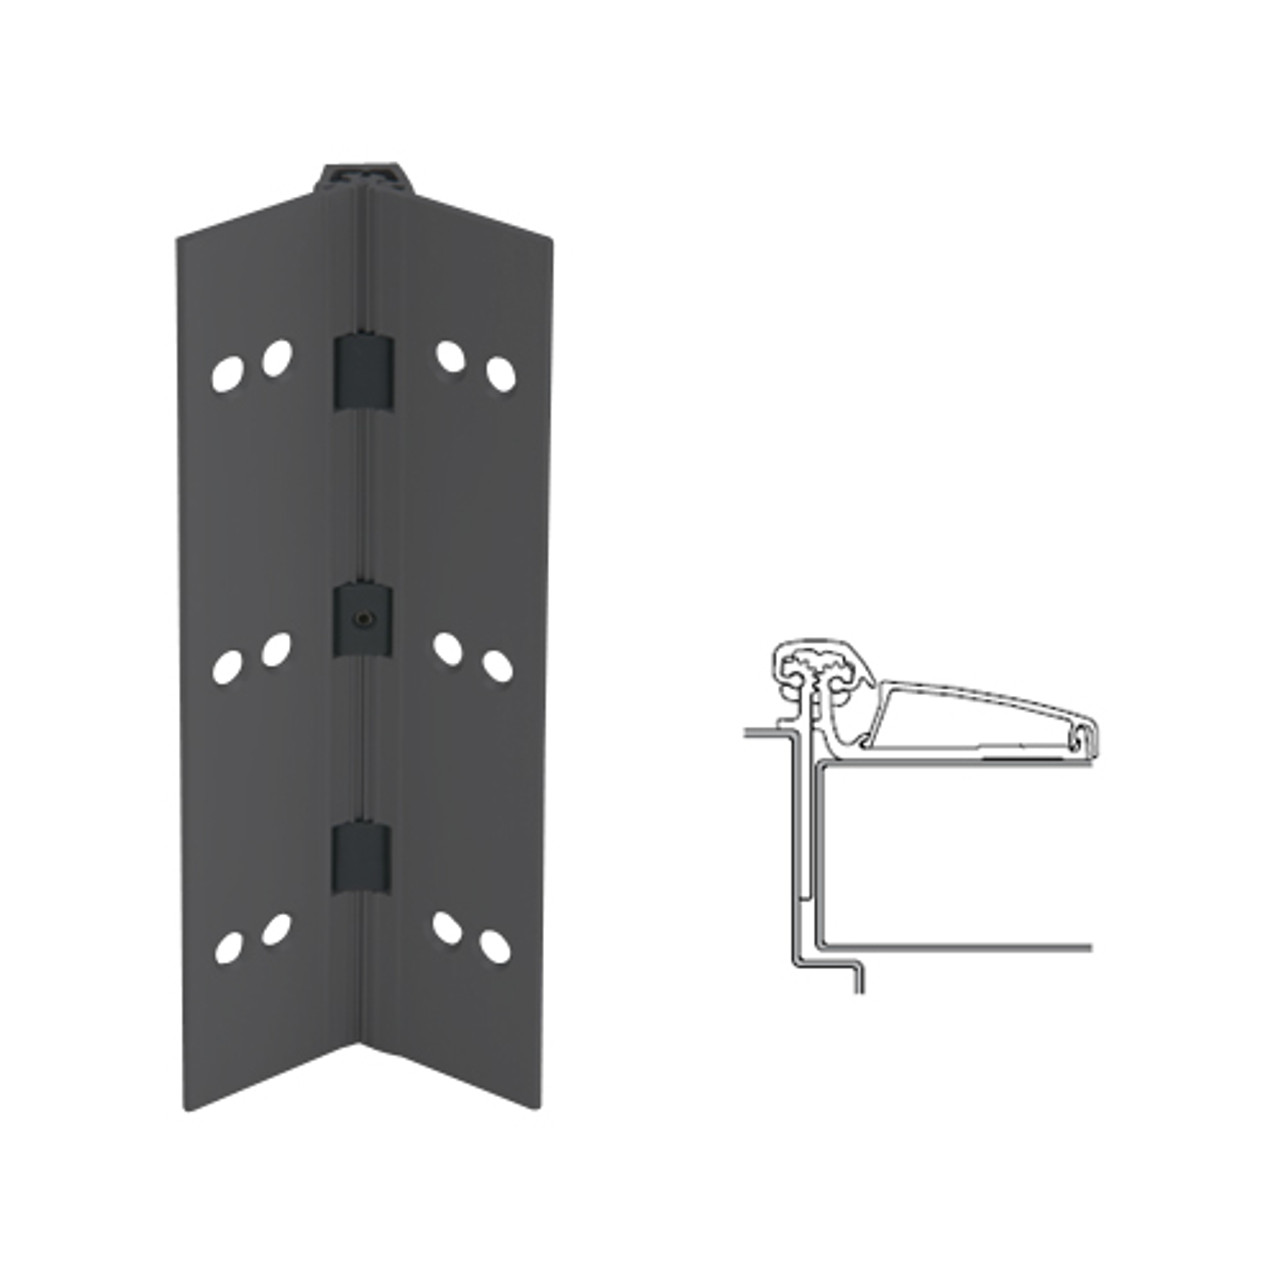 045XY-315AN-95-SECWDHM IVES Adjustable Half Surface Continuous Geared Hinges with Security Screws - Hex Pin Drive in Anodized Black